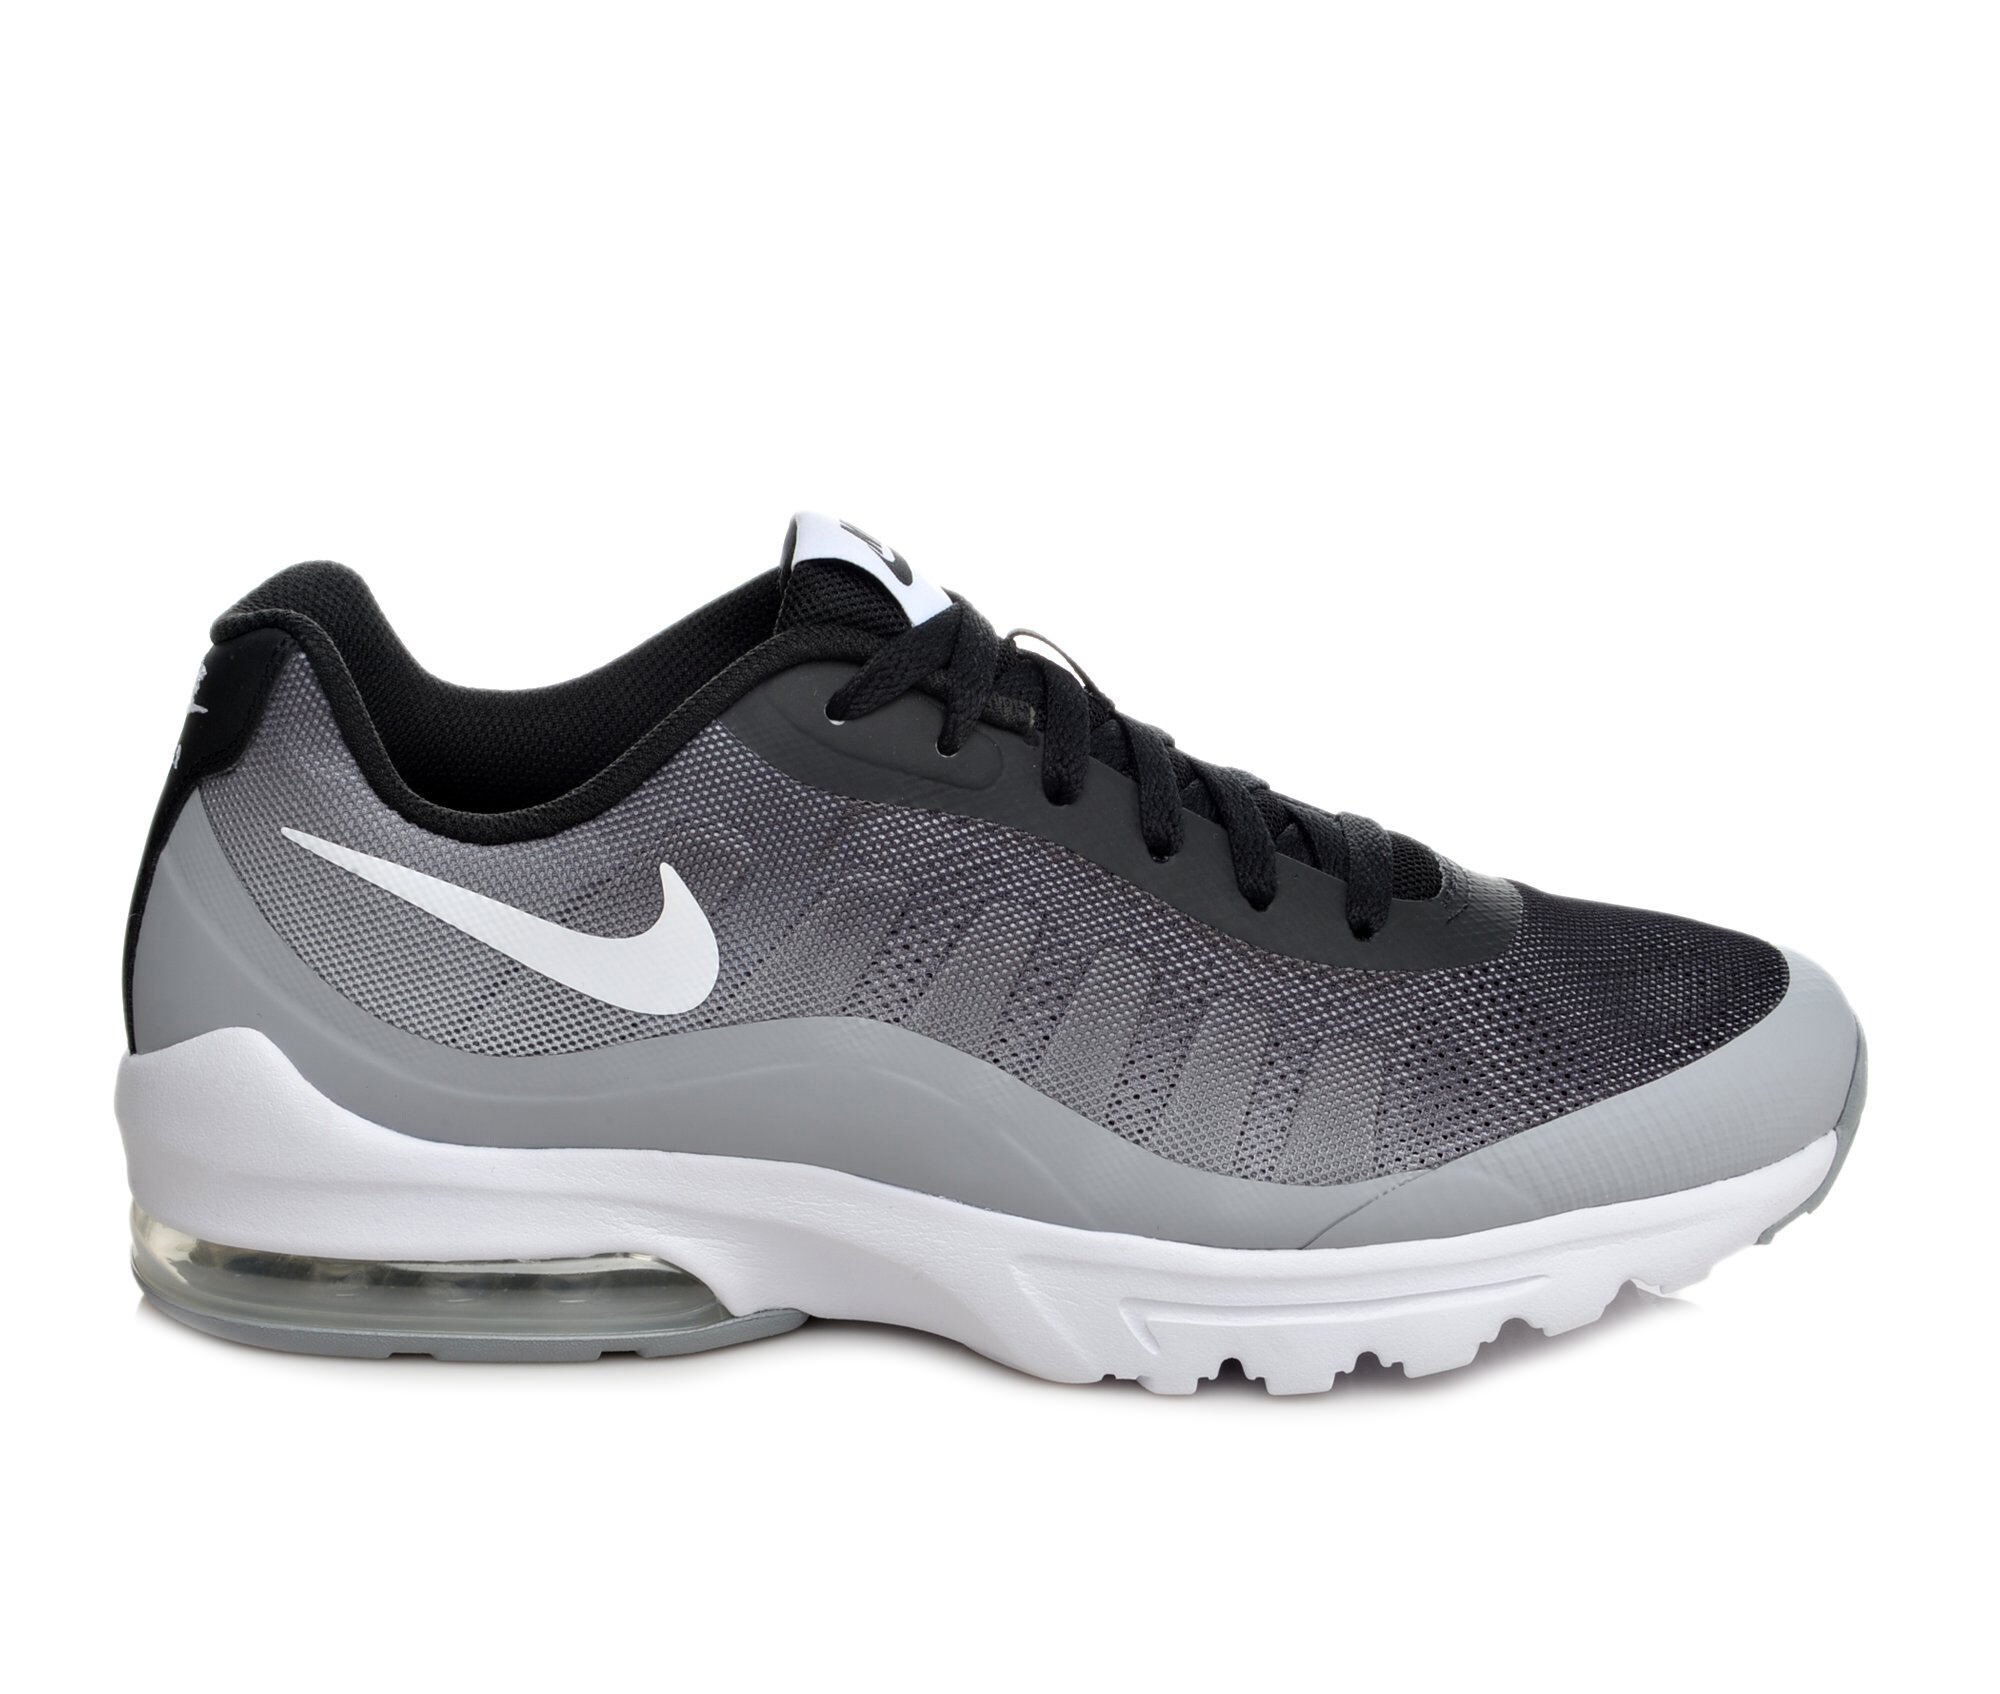 Men's Nike Air Max Invigor Print Athletic Sneakers cheap sale outlet gcUYjA1